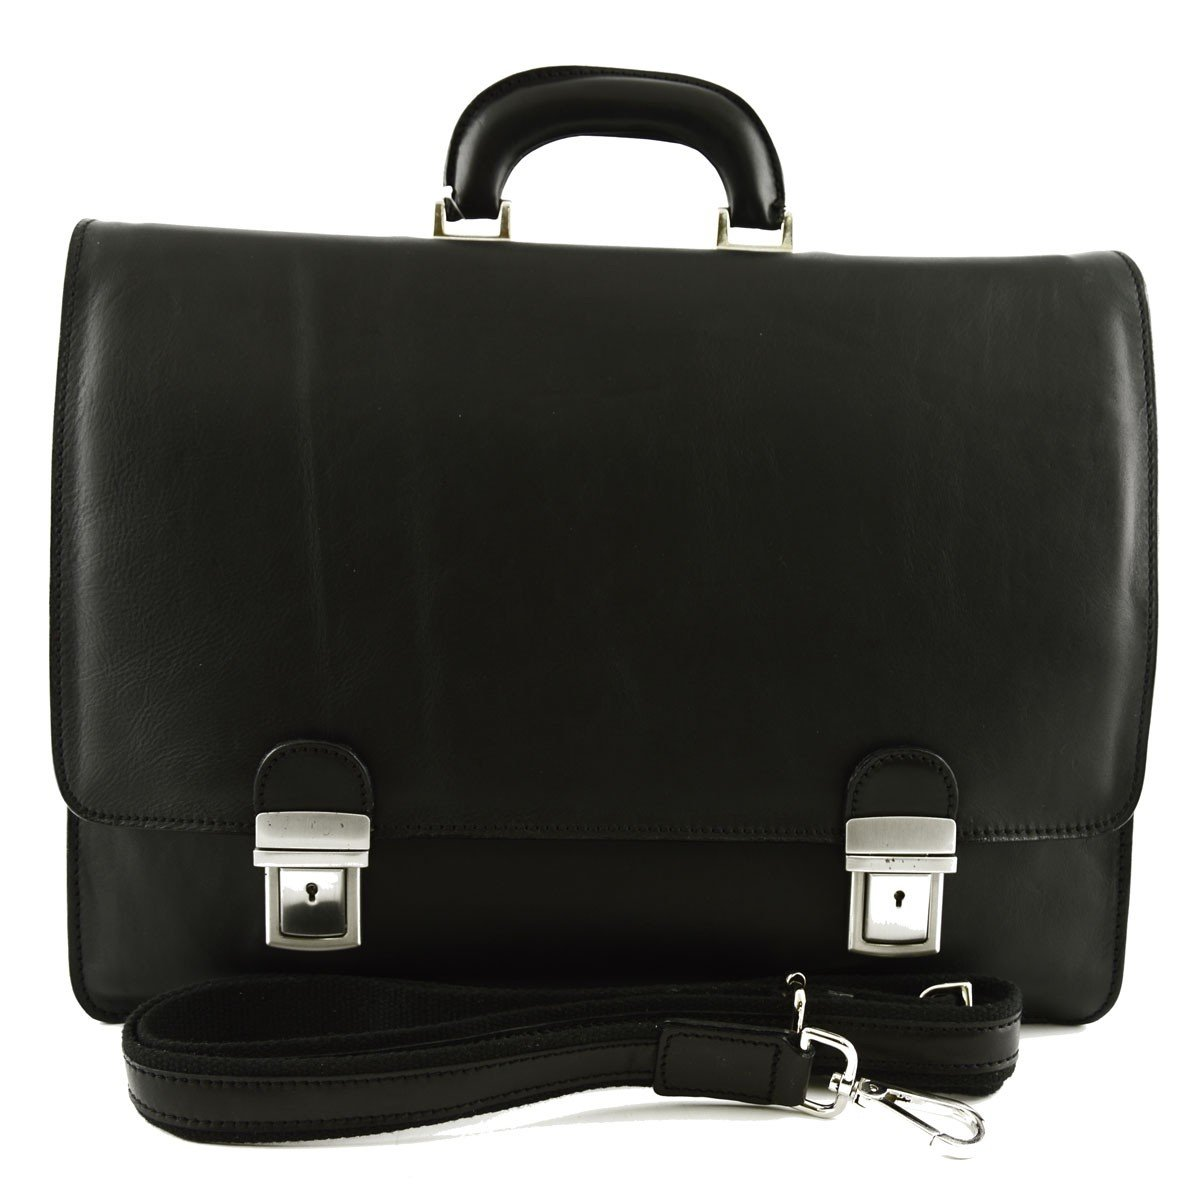 Made In Italy Genuine Leather Business Bag Color Black - Business Bag   B01N5WHXDT